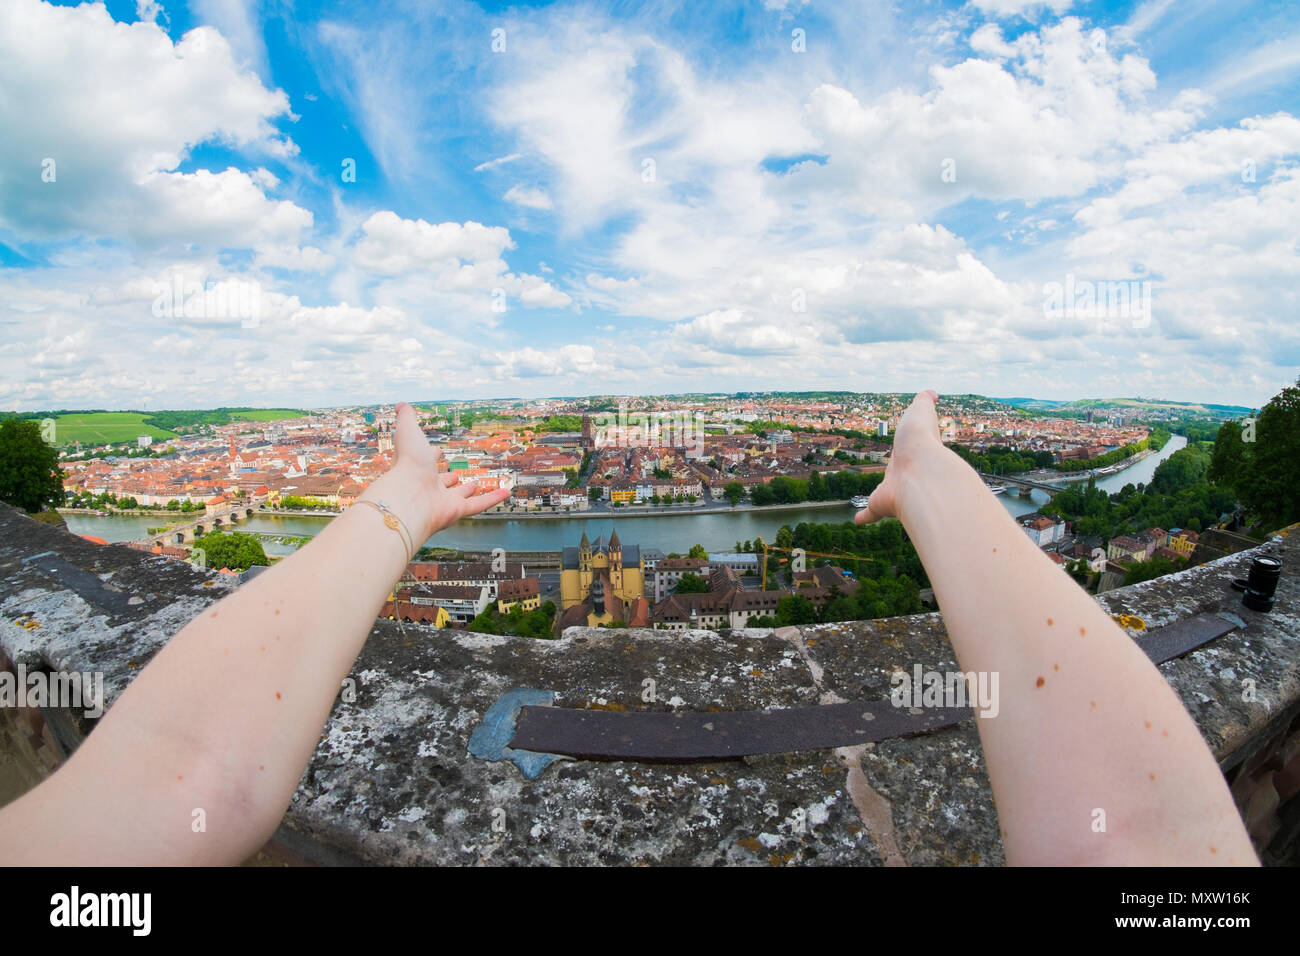 First person view from Festung Marienberg with arms in foreground on Würzburg, Germany Stock Photo